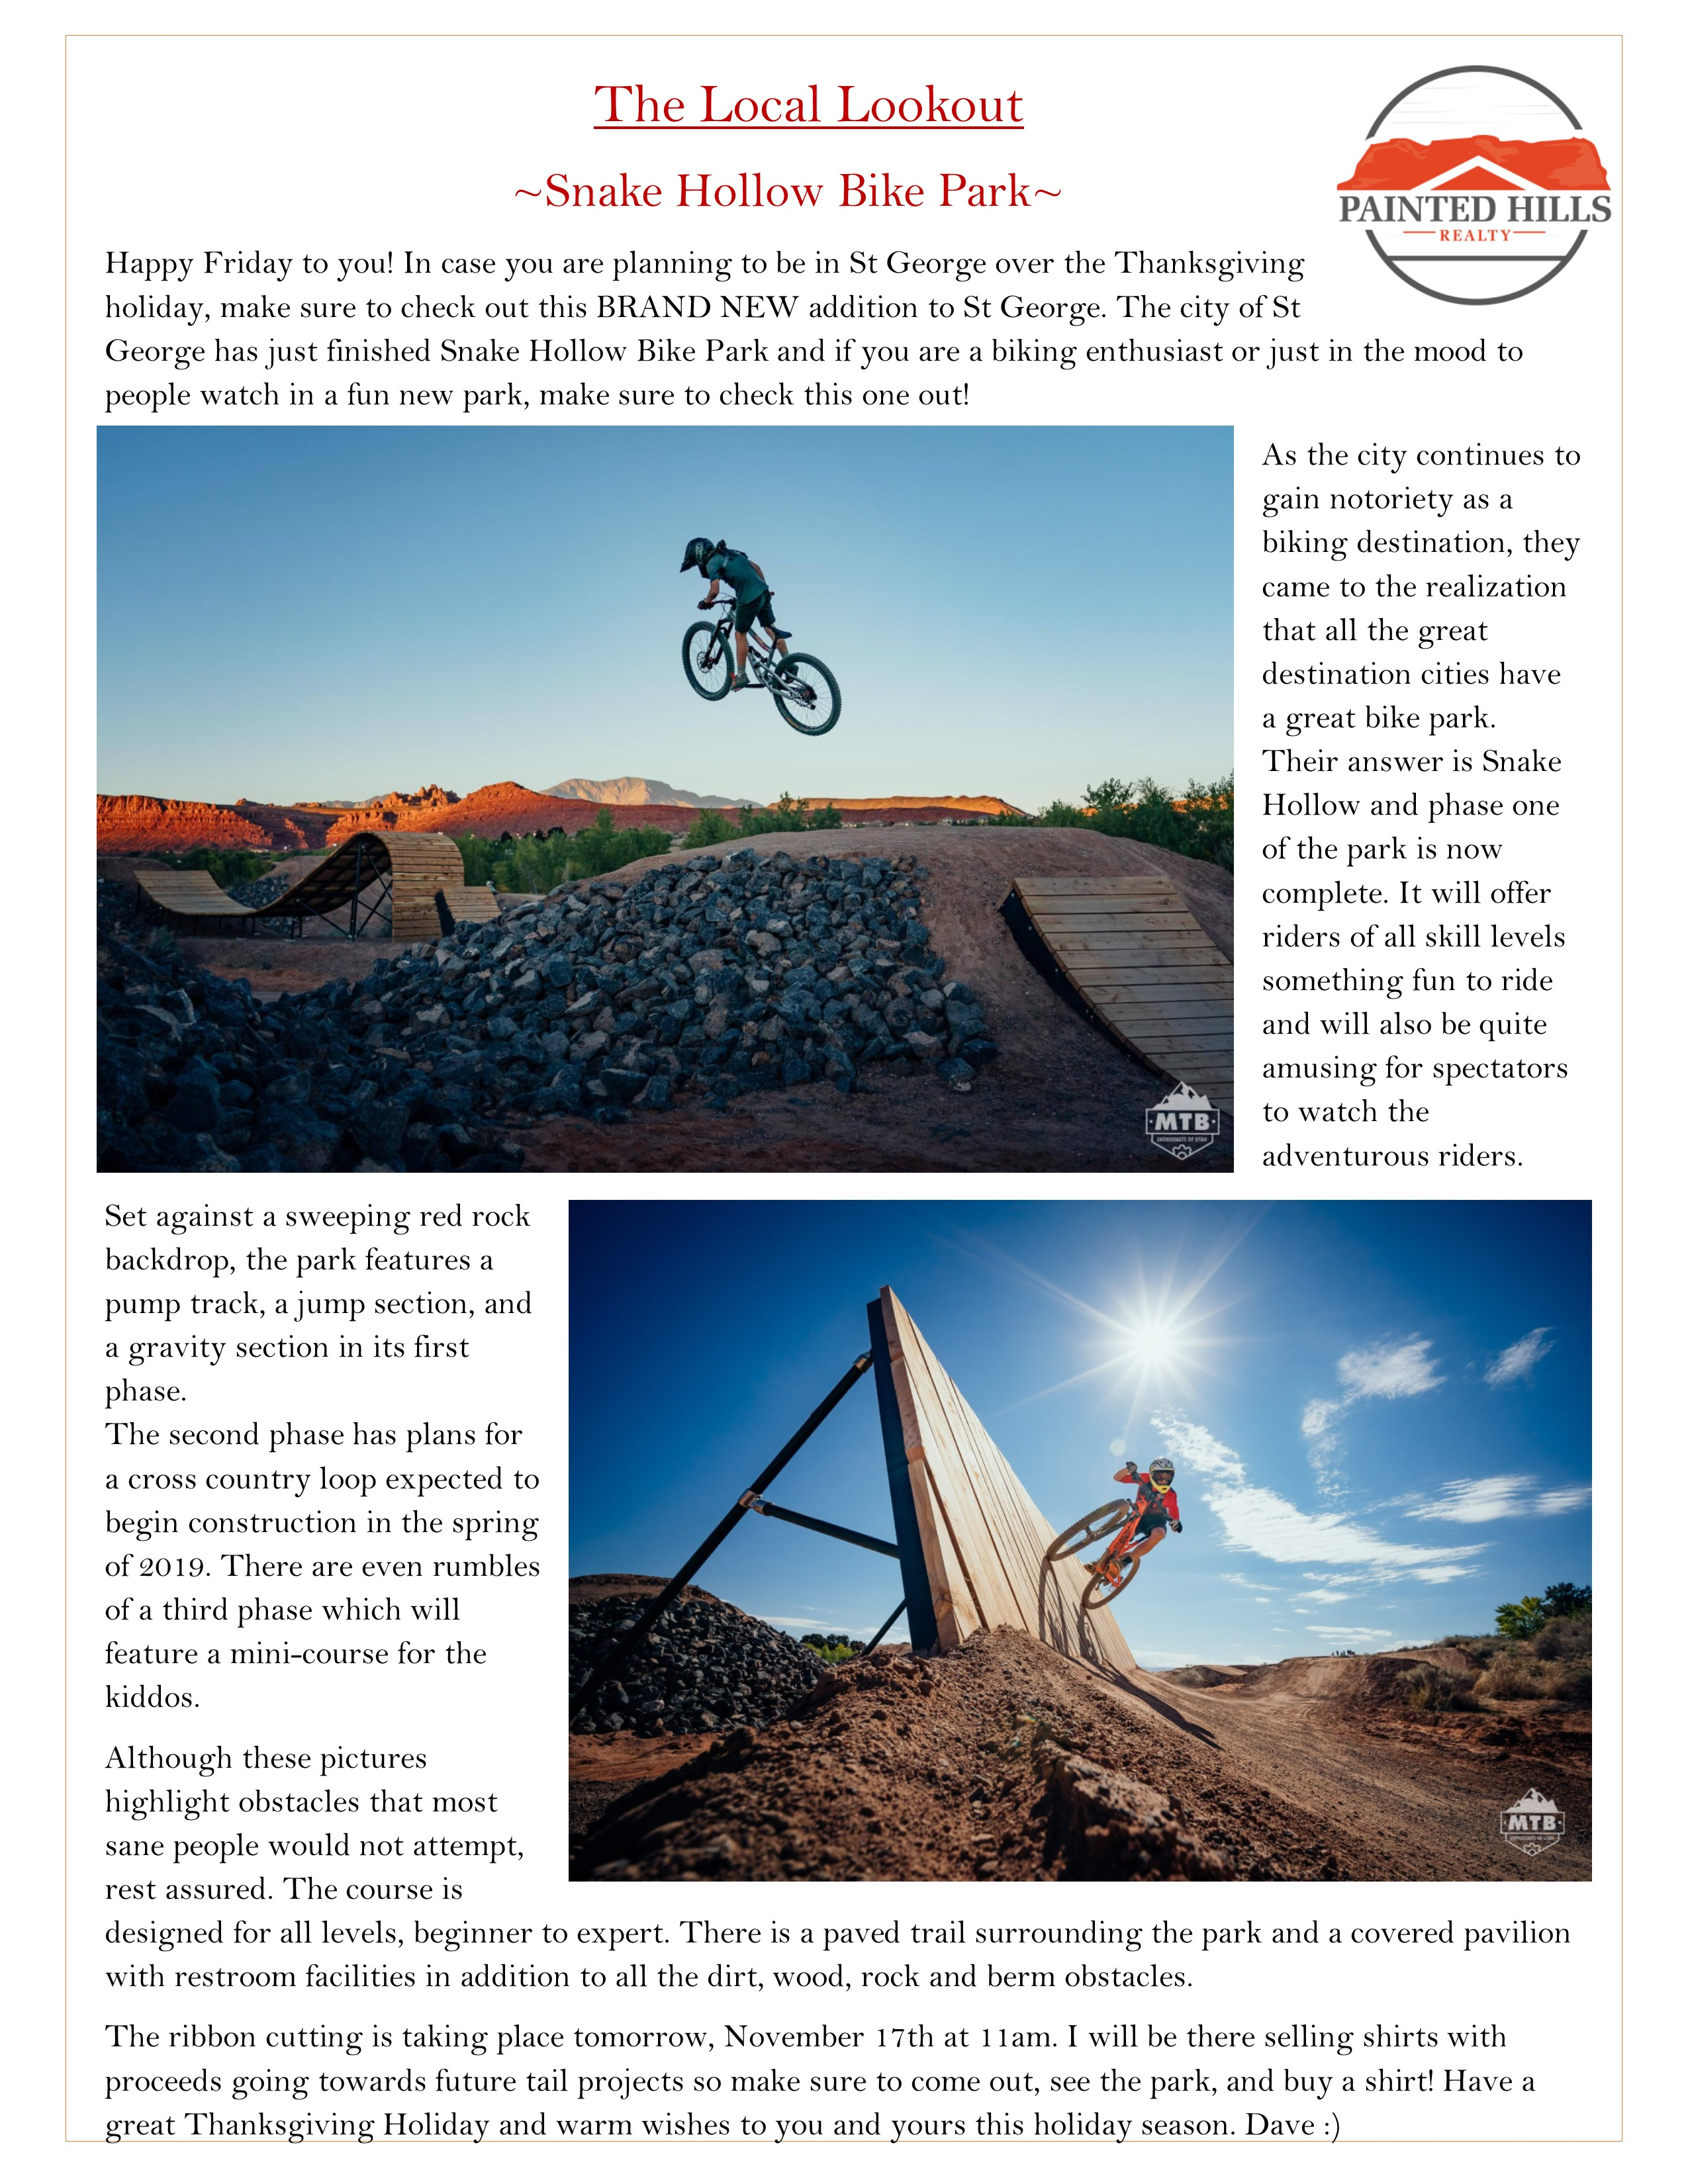 The Local Lookout- Snake Hollow Bike Park